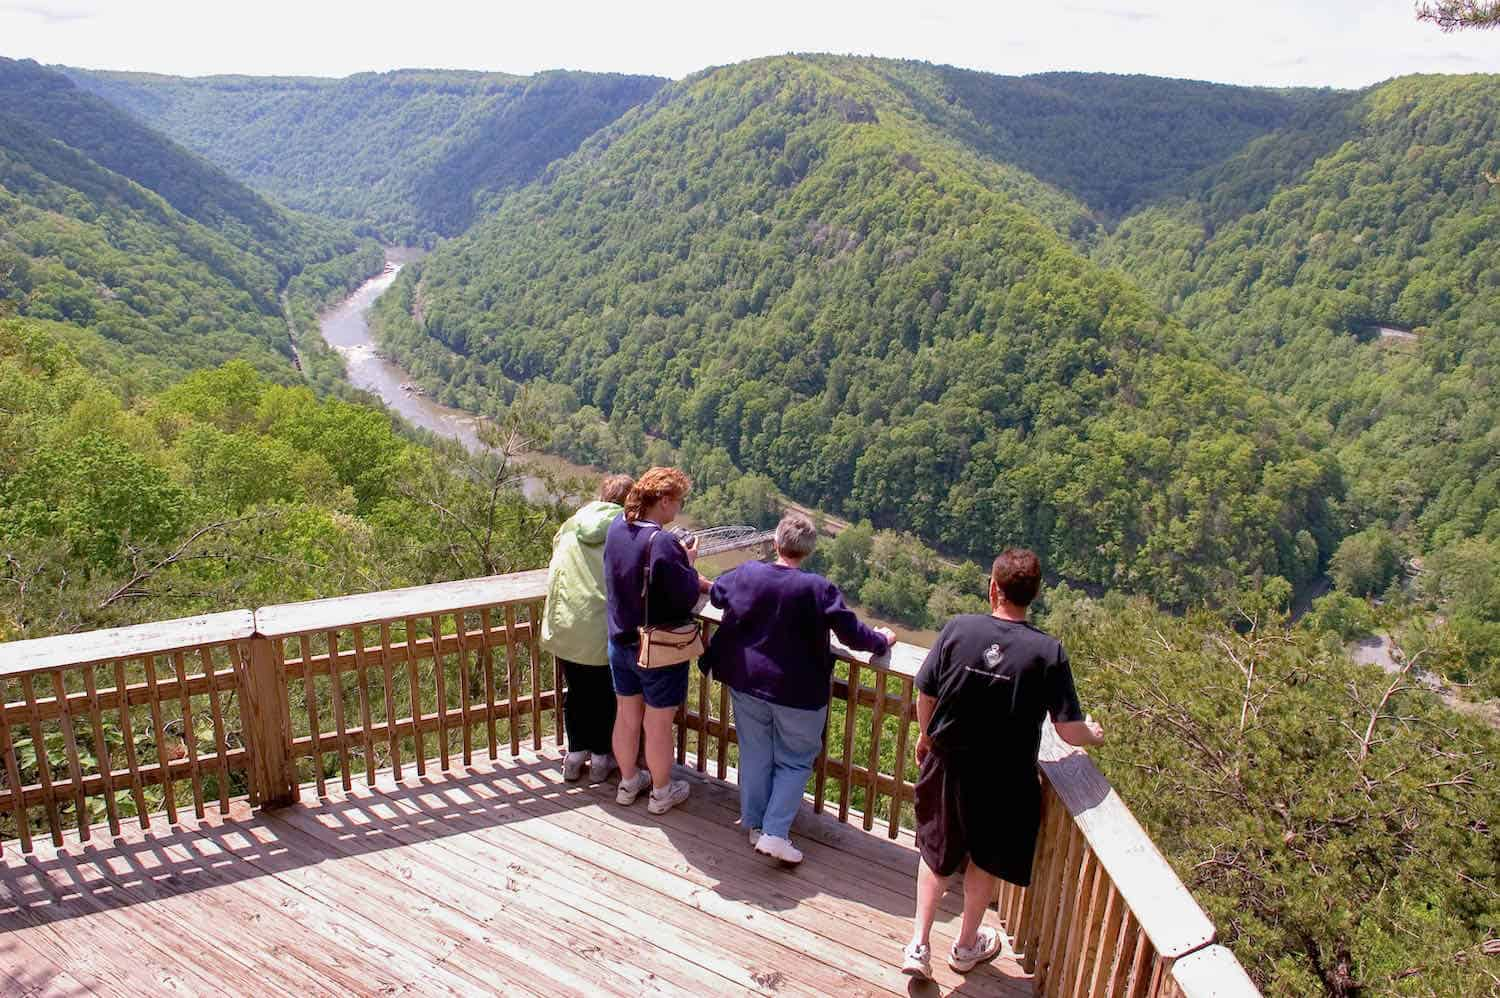 4 people standing at a wooden overlook viewing the river and mountain landscape at New River Gorge National Park.